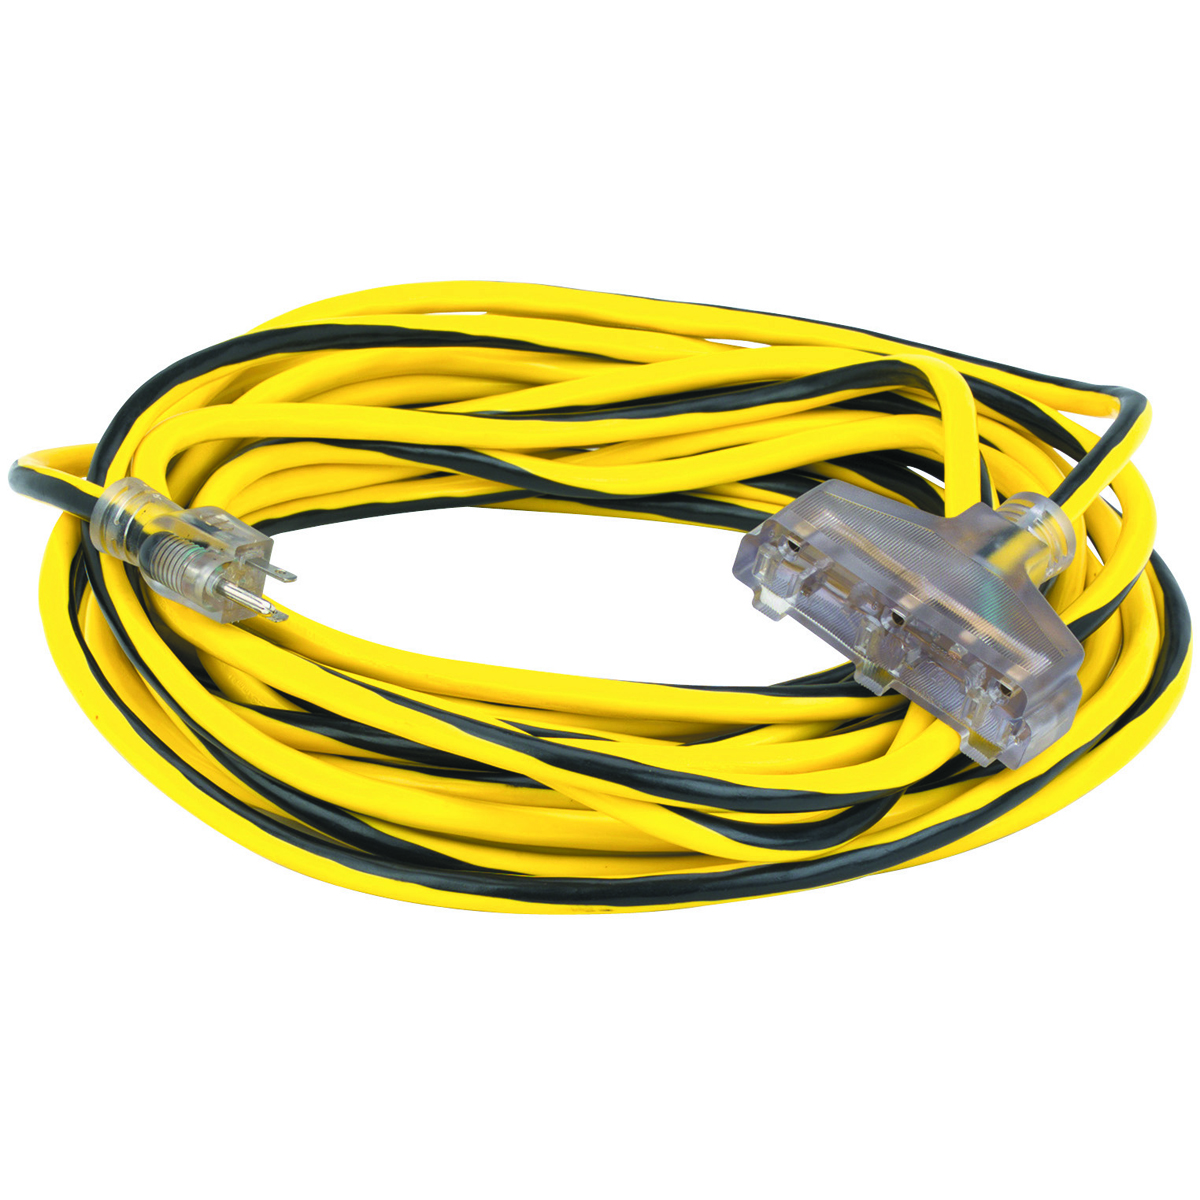 Circuit Bbreaker Band Bwire Bsize Bchart as well Blue besides Cord Chart additionally Tour Electricalcordspecchar together with Wire Gauge   Chart. on extension cord wire size chart